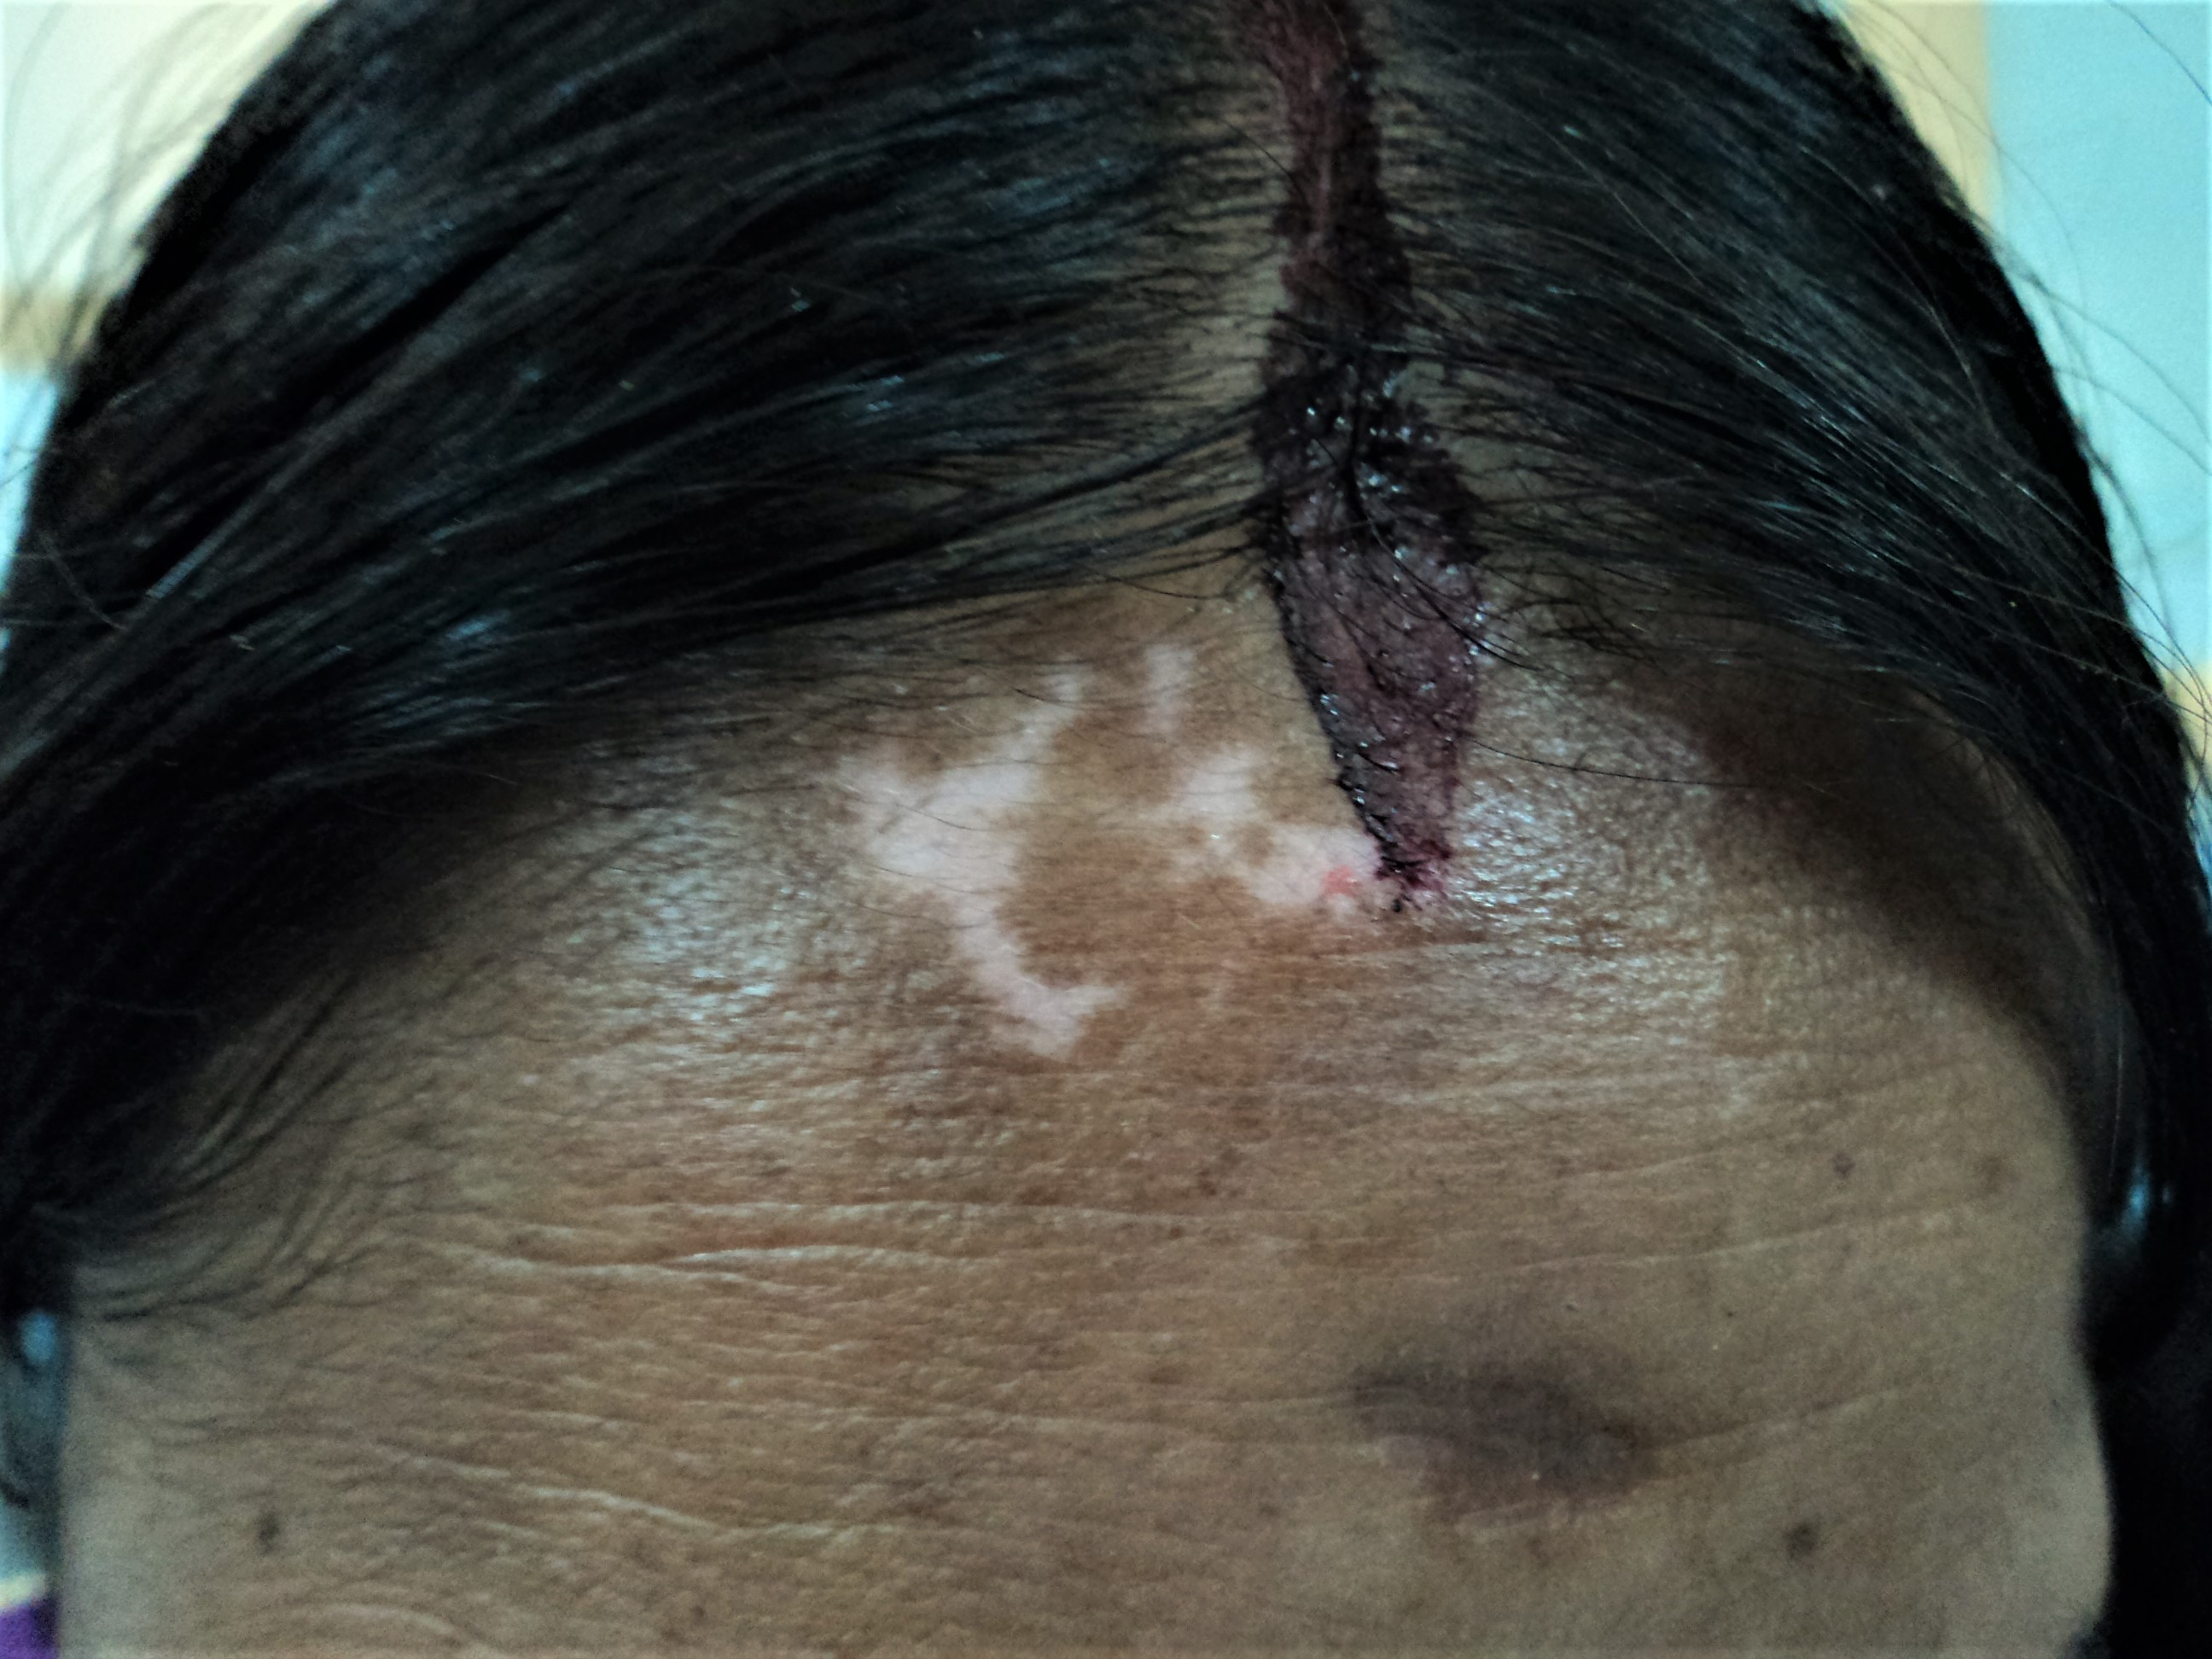 Figure 1. New vitiligo macules over the forehead of a recently married Indian lady, which appeared within 3 weeks of application of vermillion paste (maroon-colored) over the mid portion of the frontal scalp line.